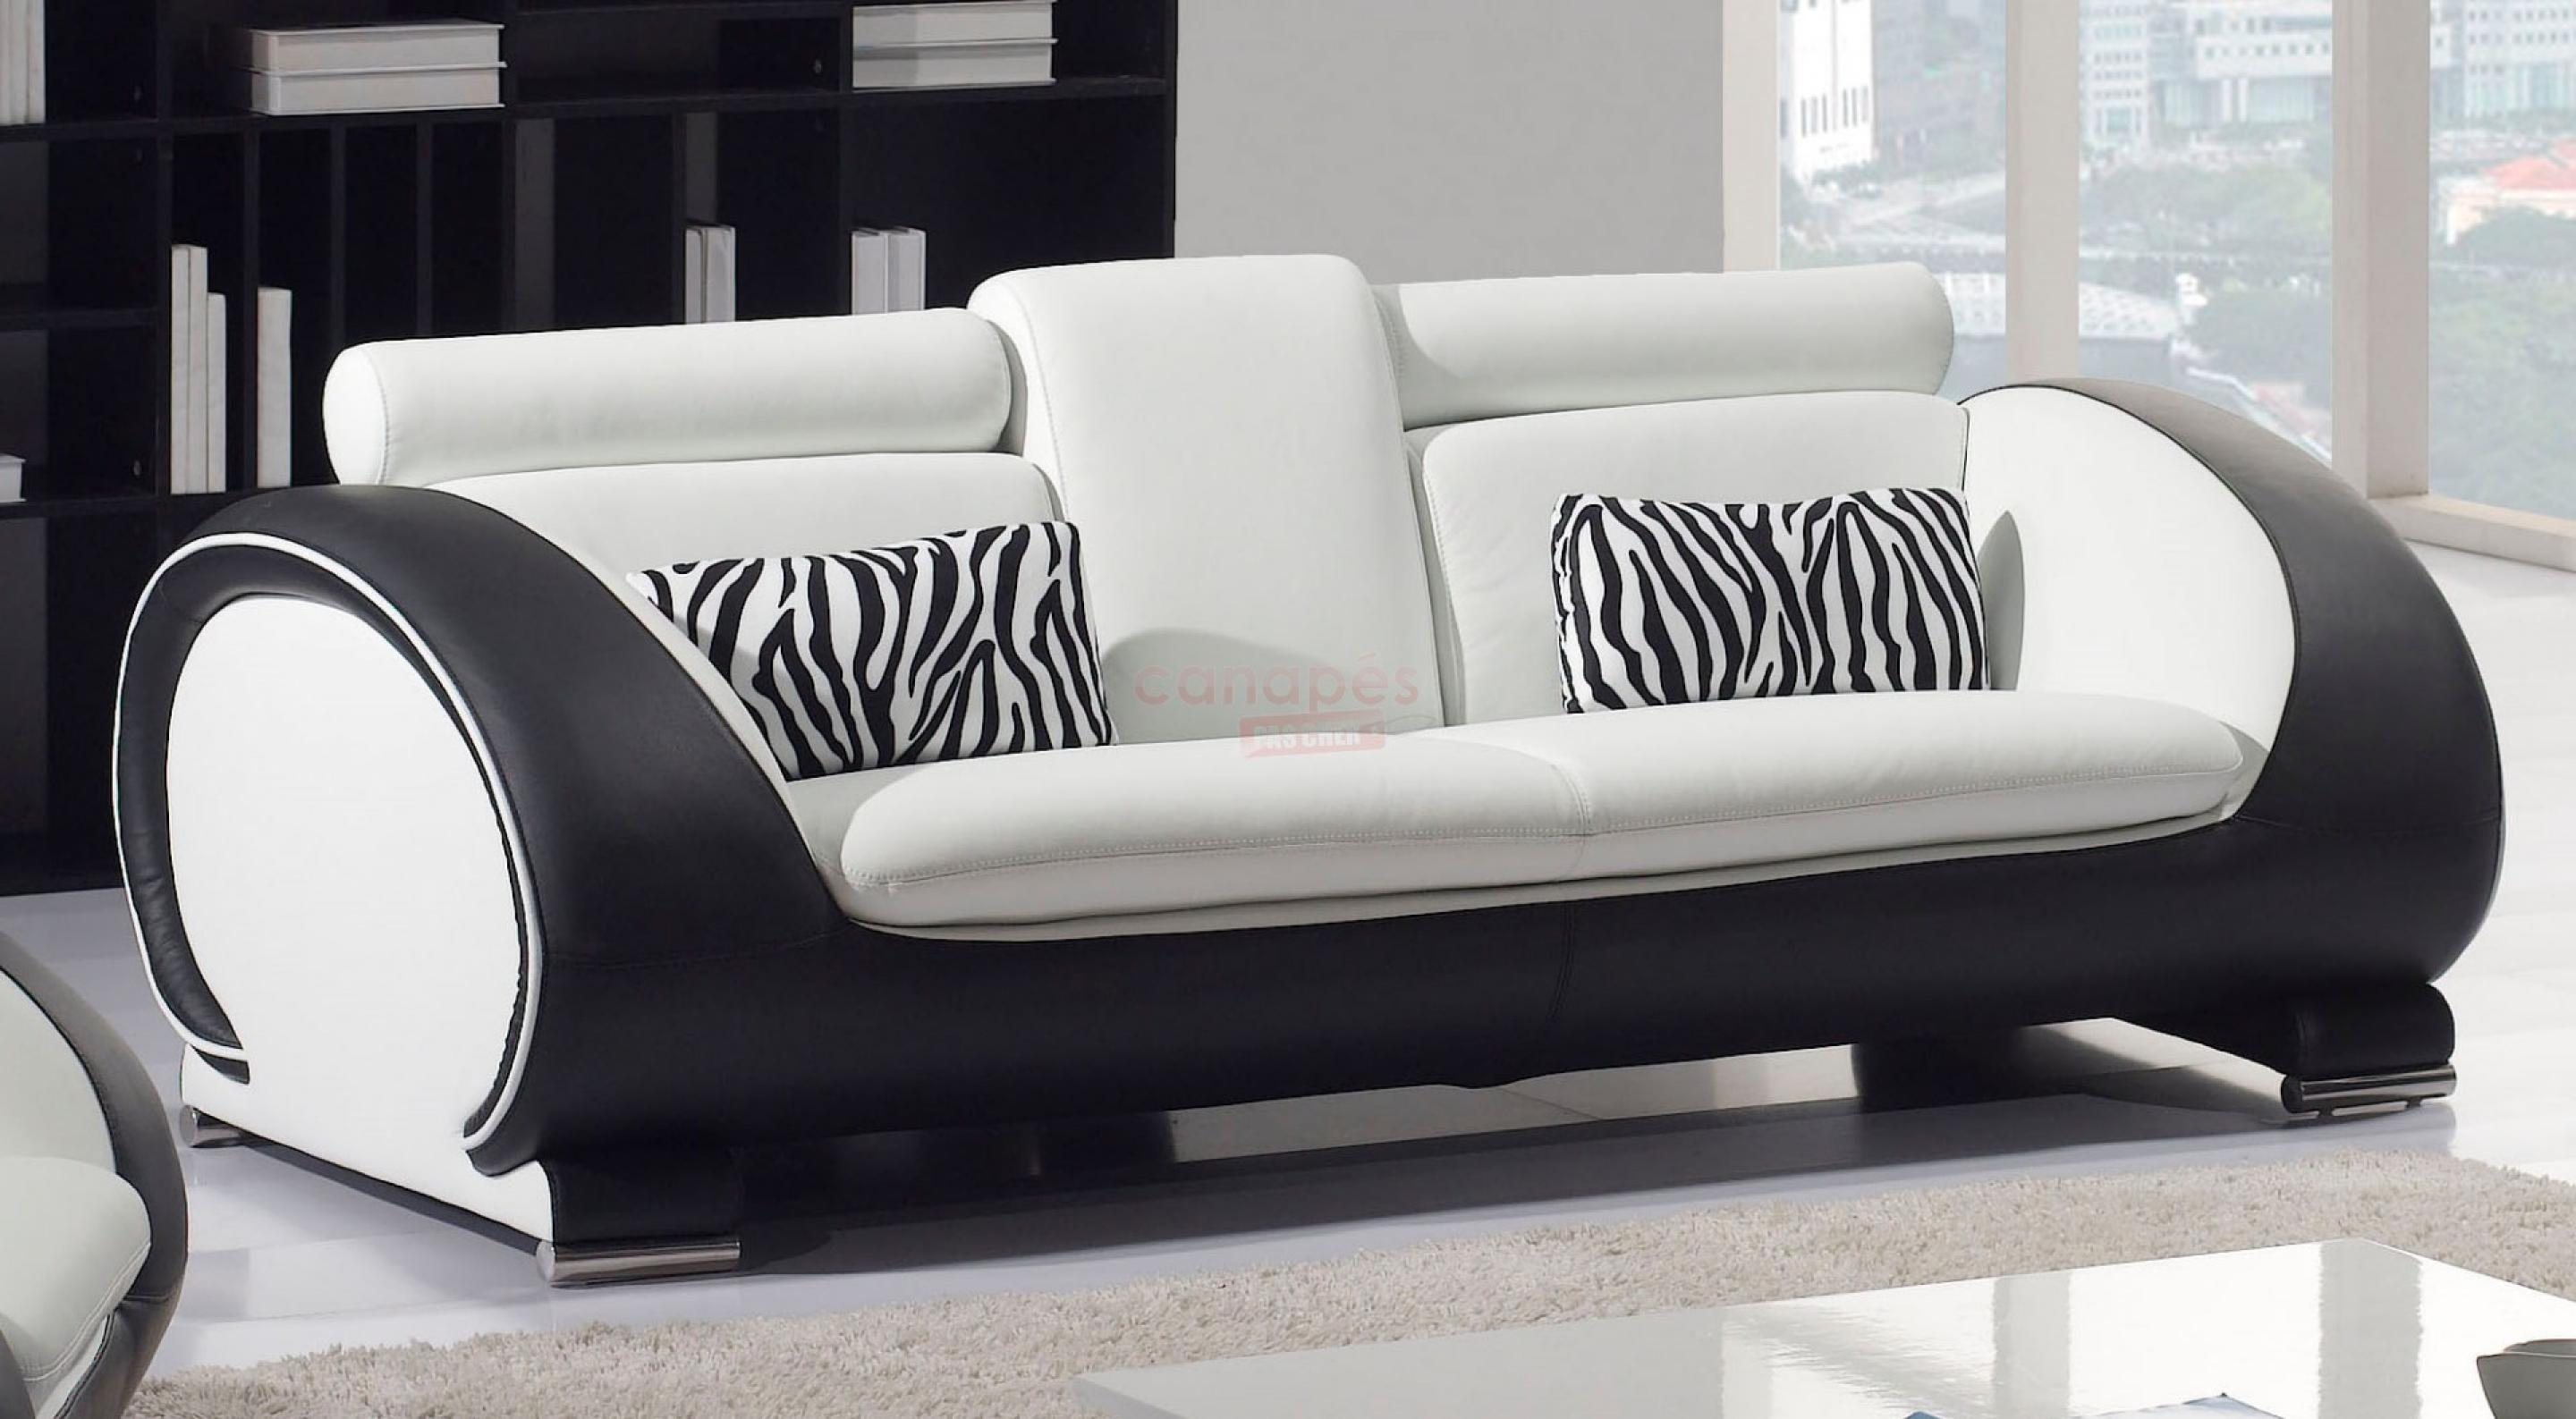 photos canap convertible 3 places pas cher. Black Bedroom Furniture Sets. Home Design Ideas